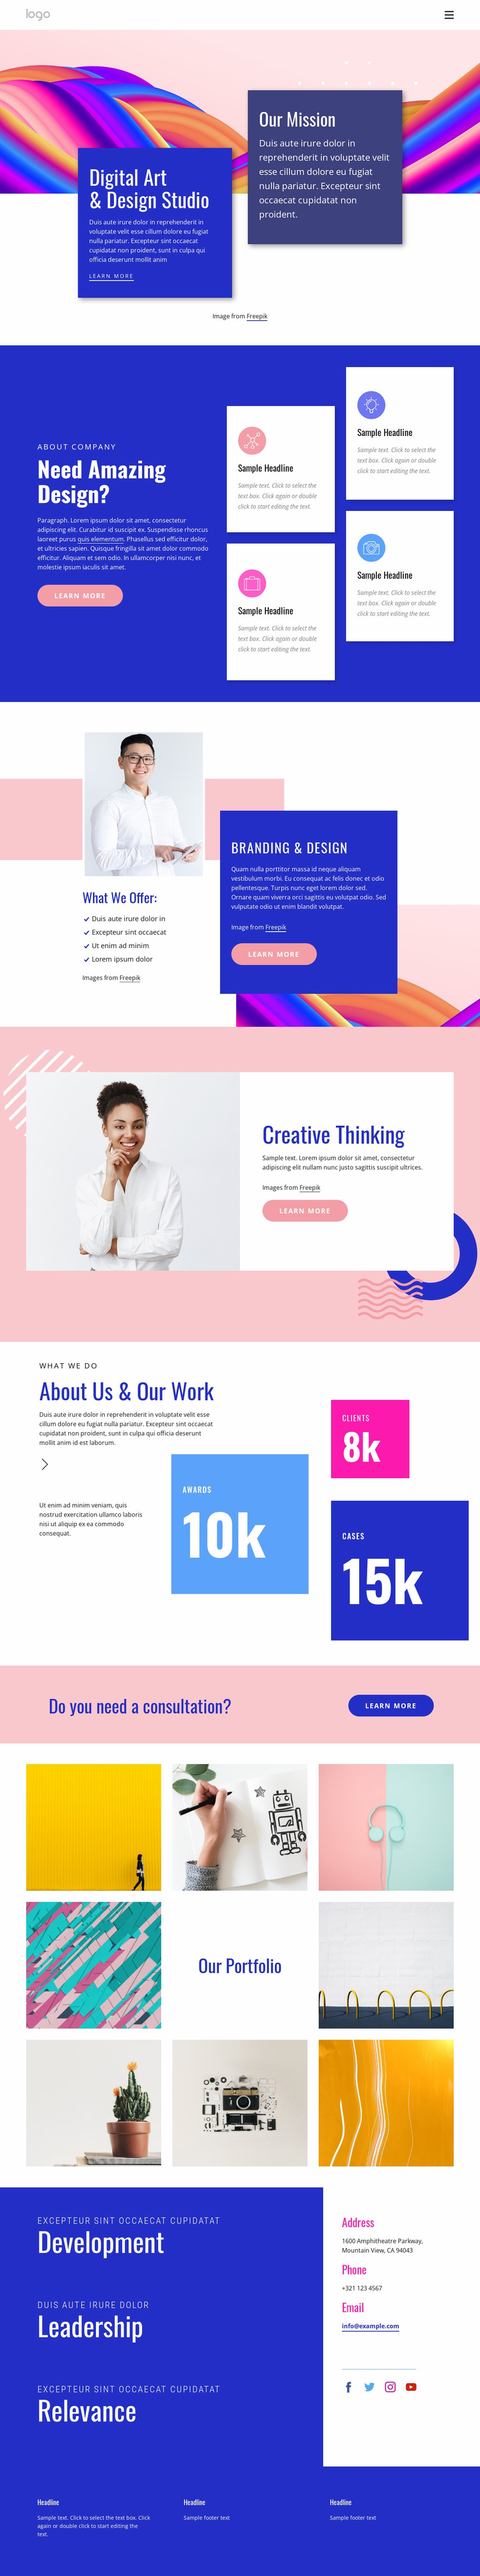 Create content that connects Website Design